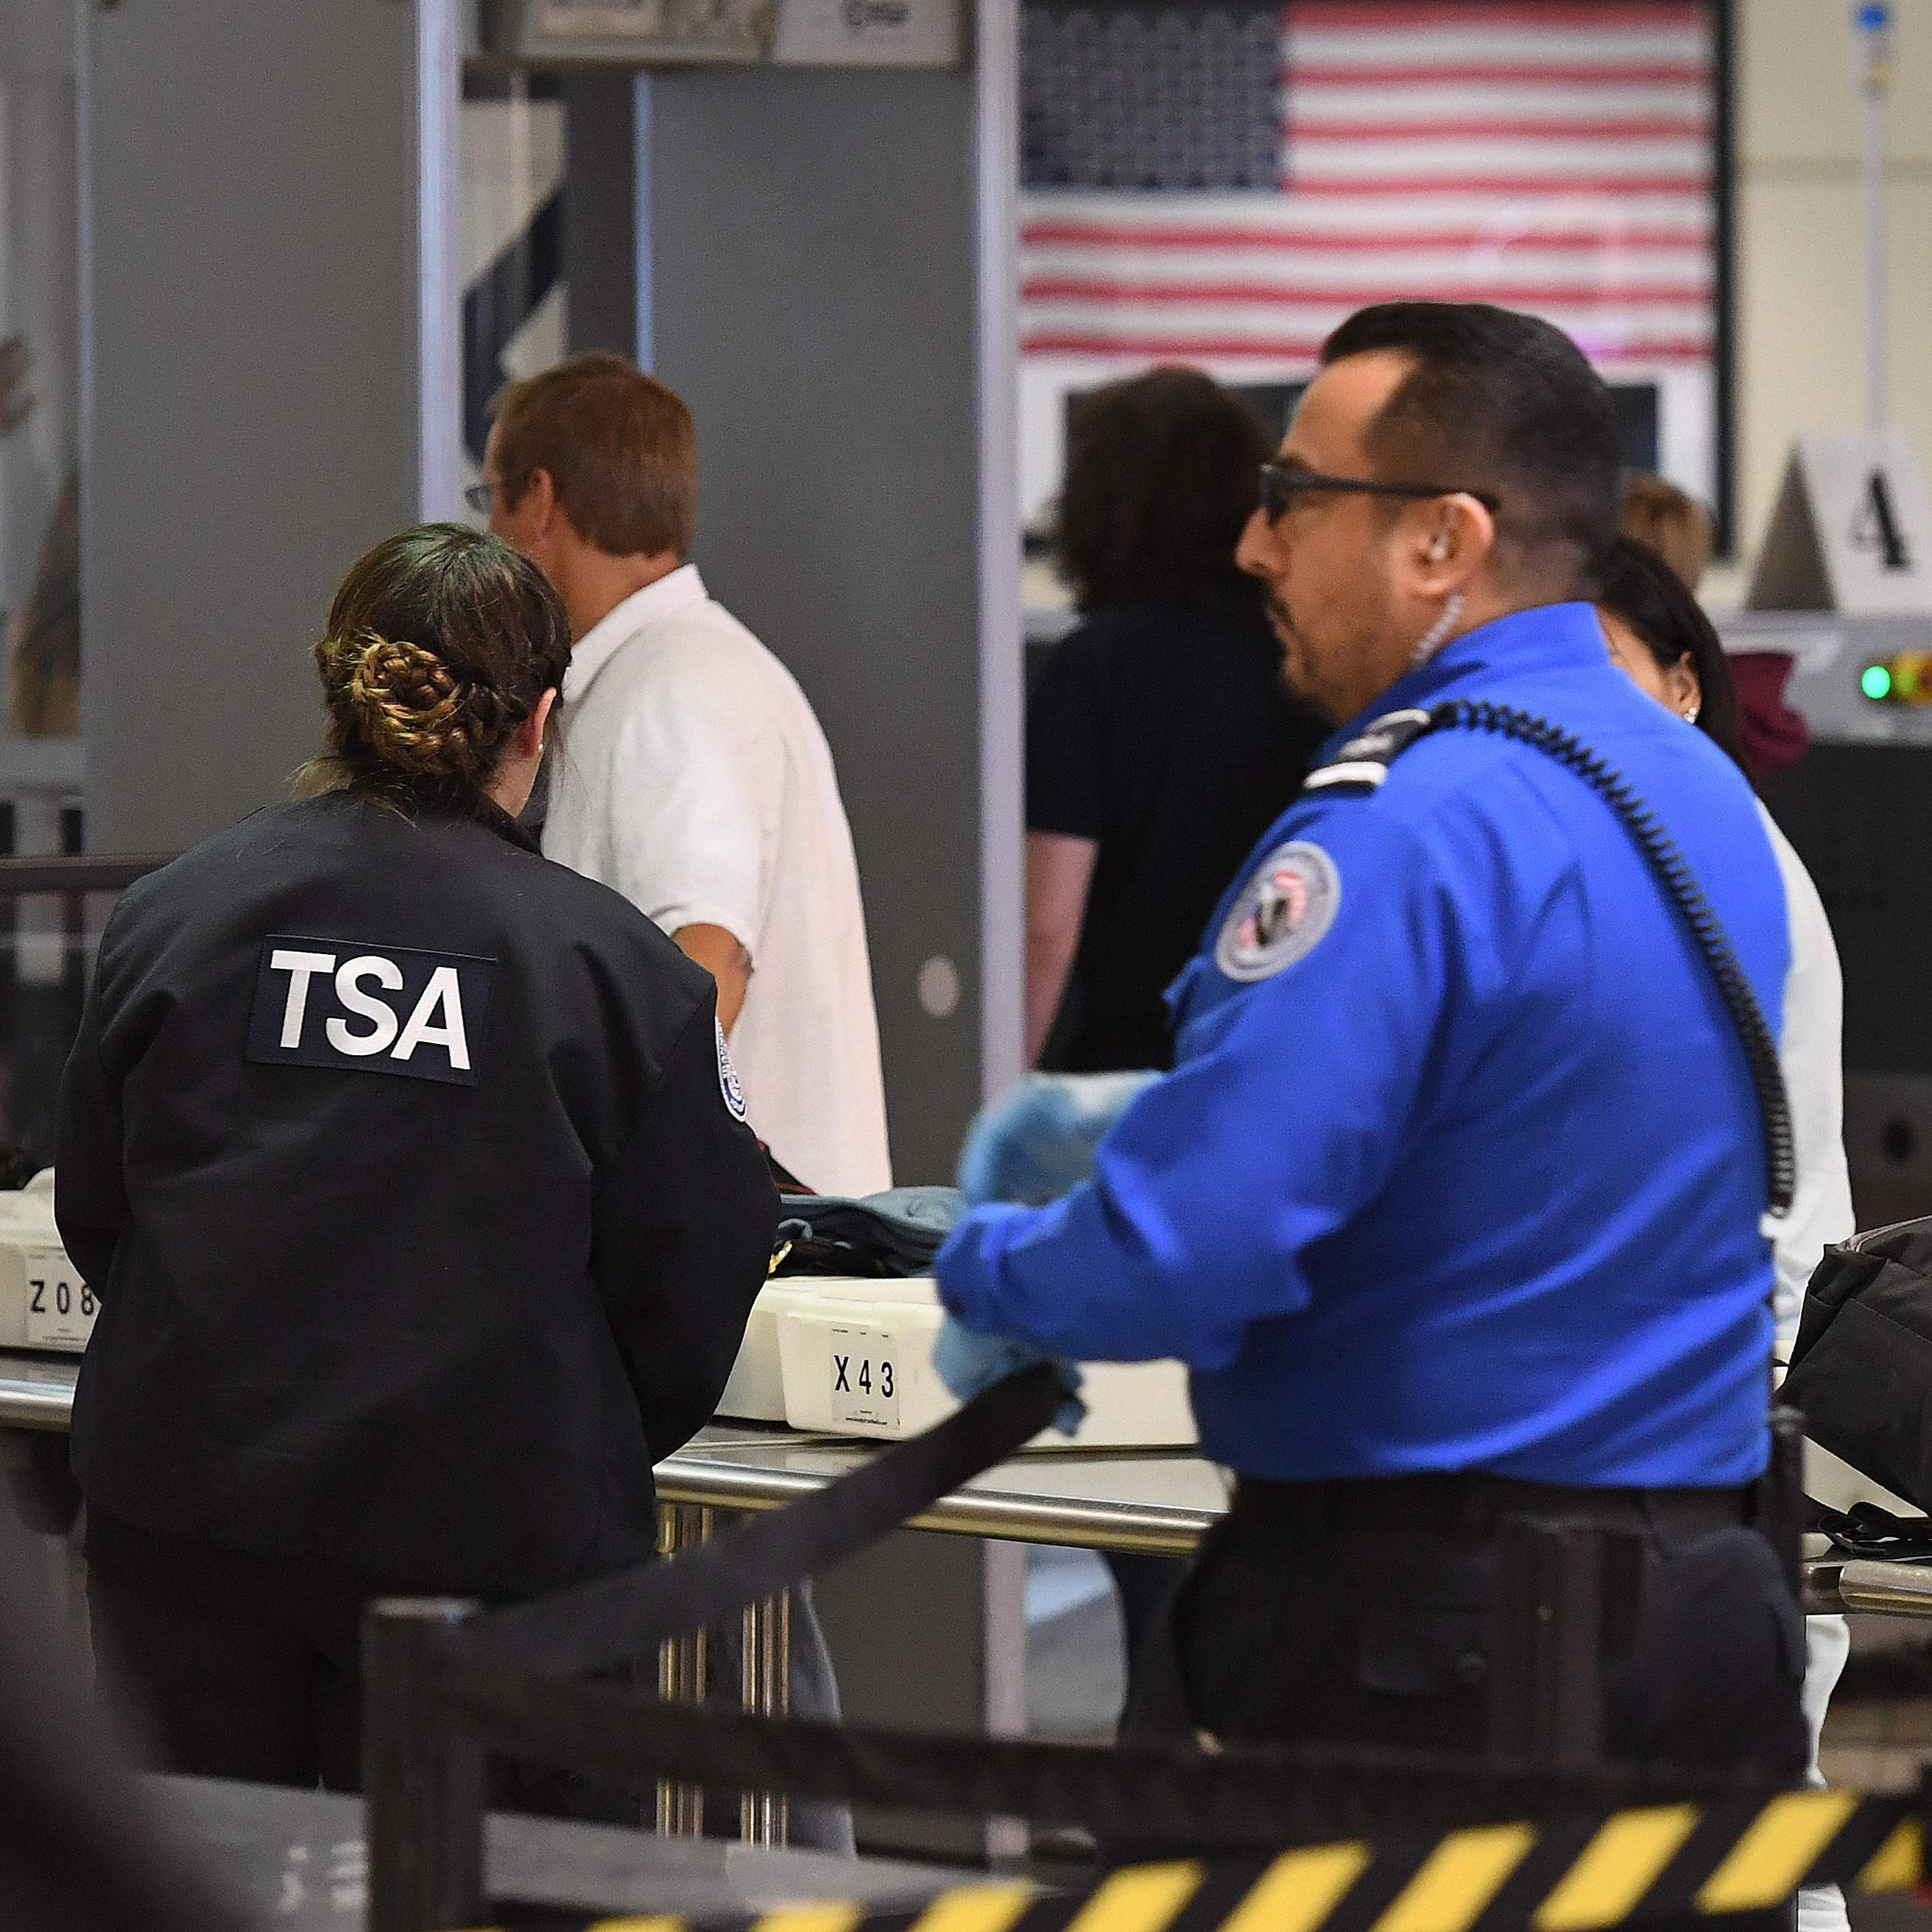 Shutdown is building a wall — at TSA airport checkpoints | Editorial